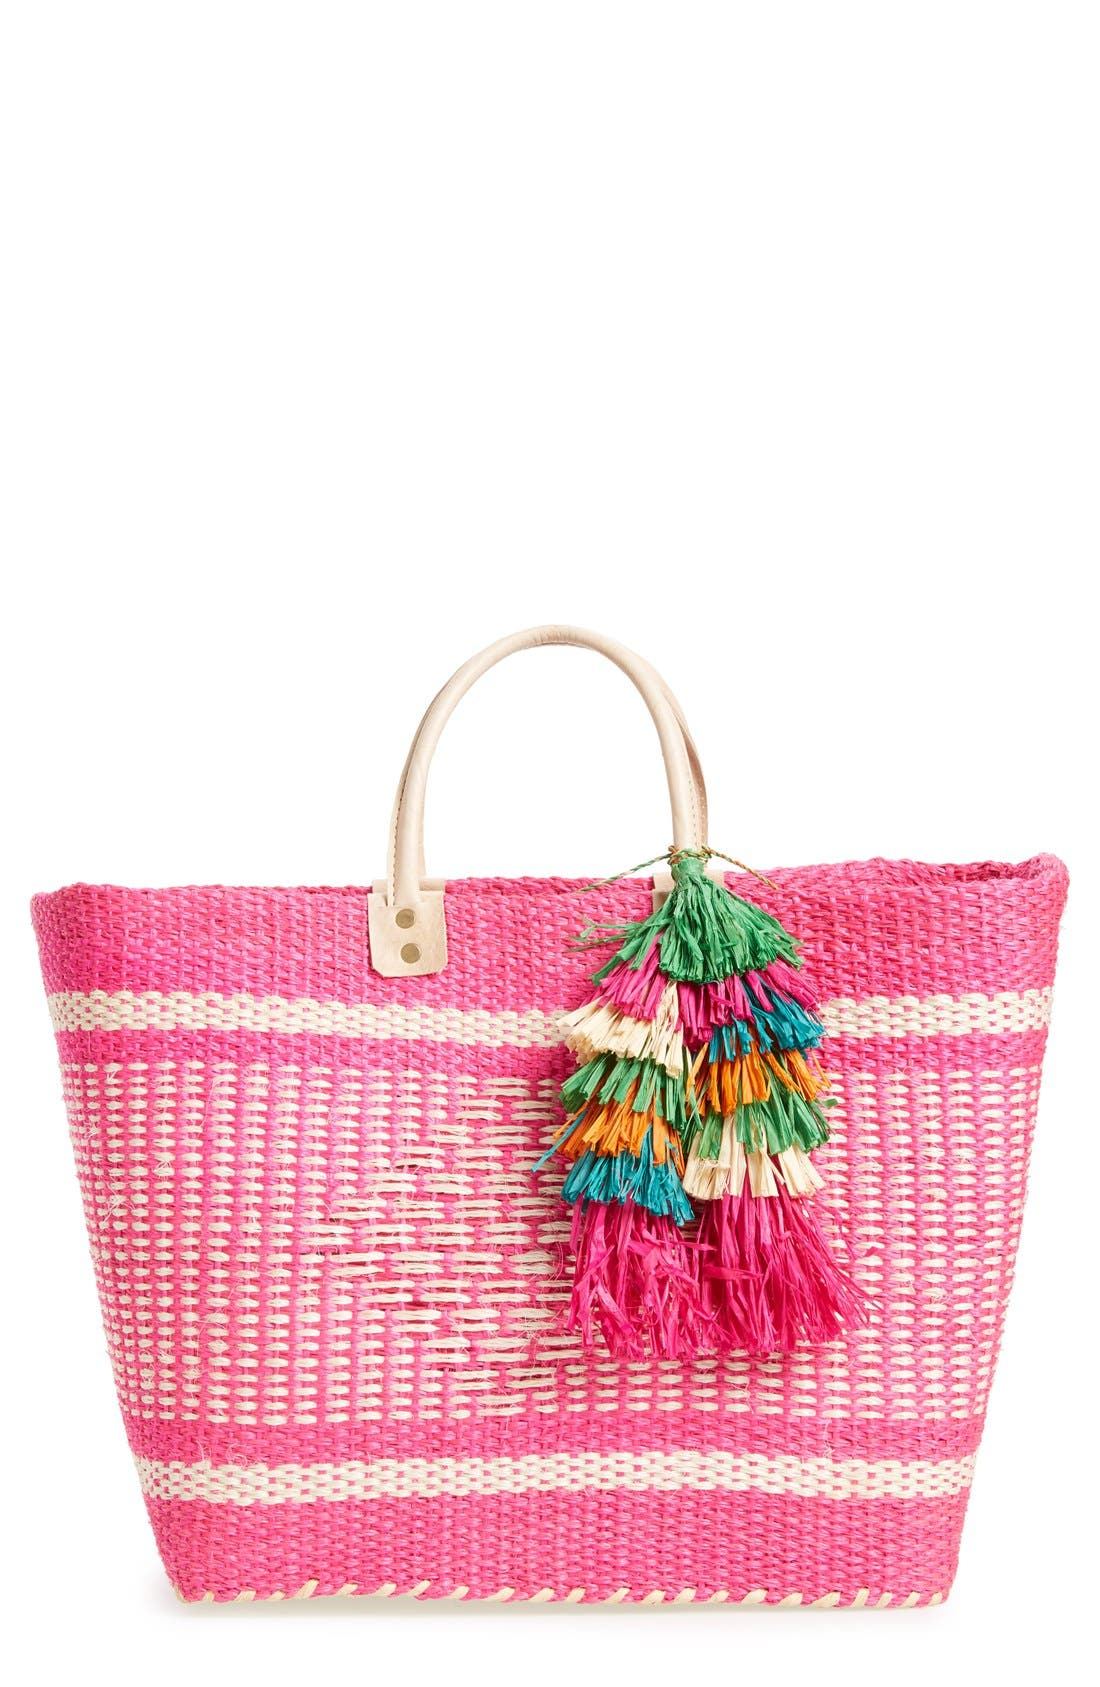 'Ibiza' Woven Tote with Tassel Charms,                             Main thumbnail 1, color,                             Pink